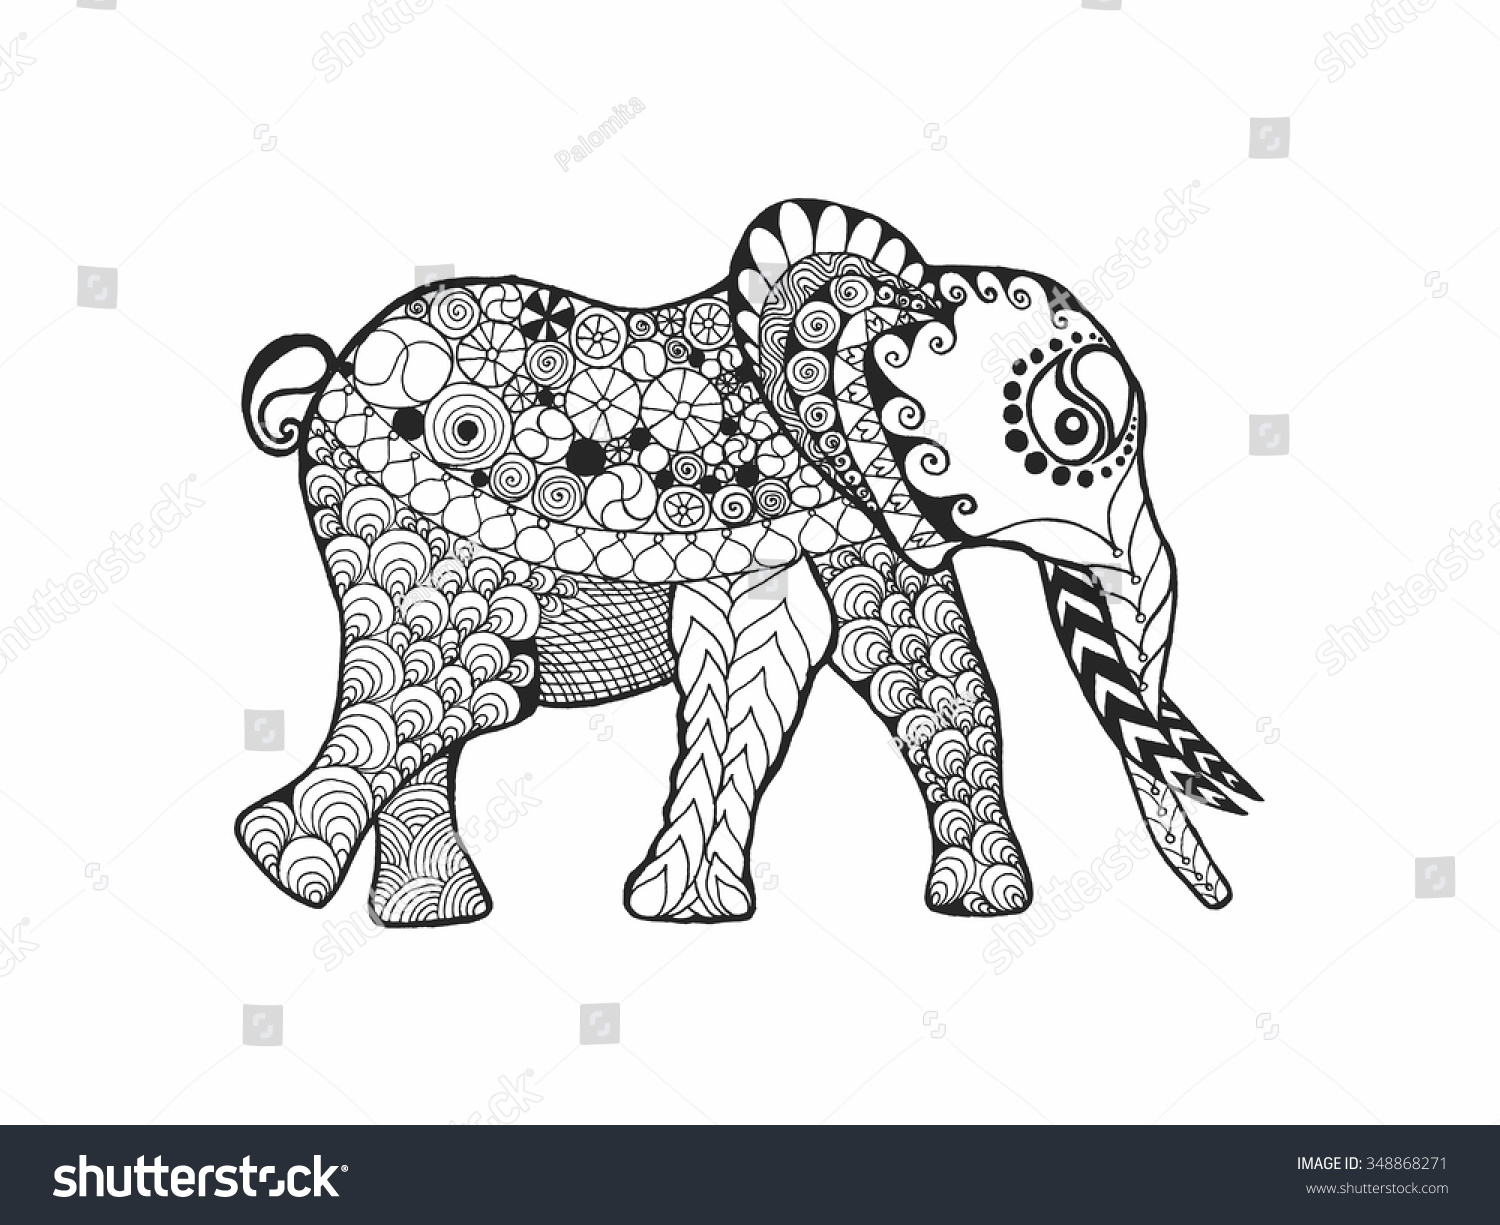 Elephant Adult Antistress Coloring Page Black Stock Vector ...